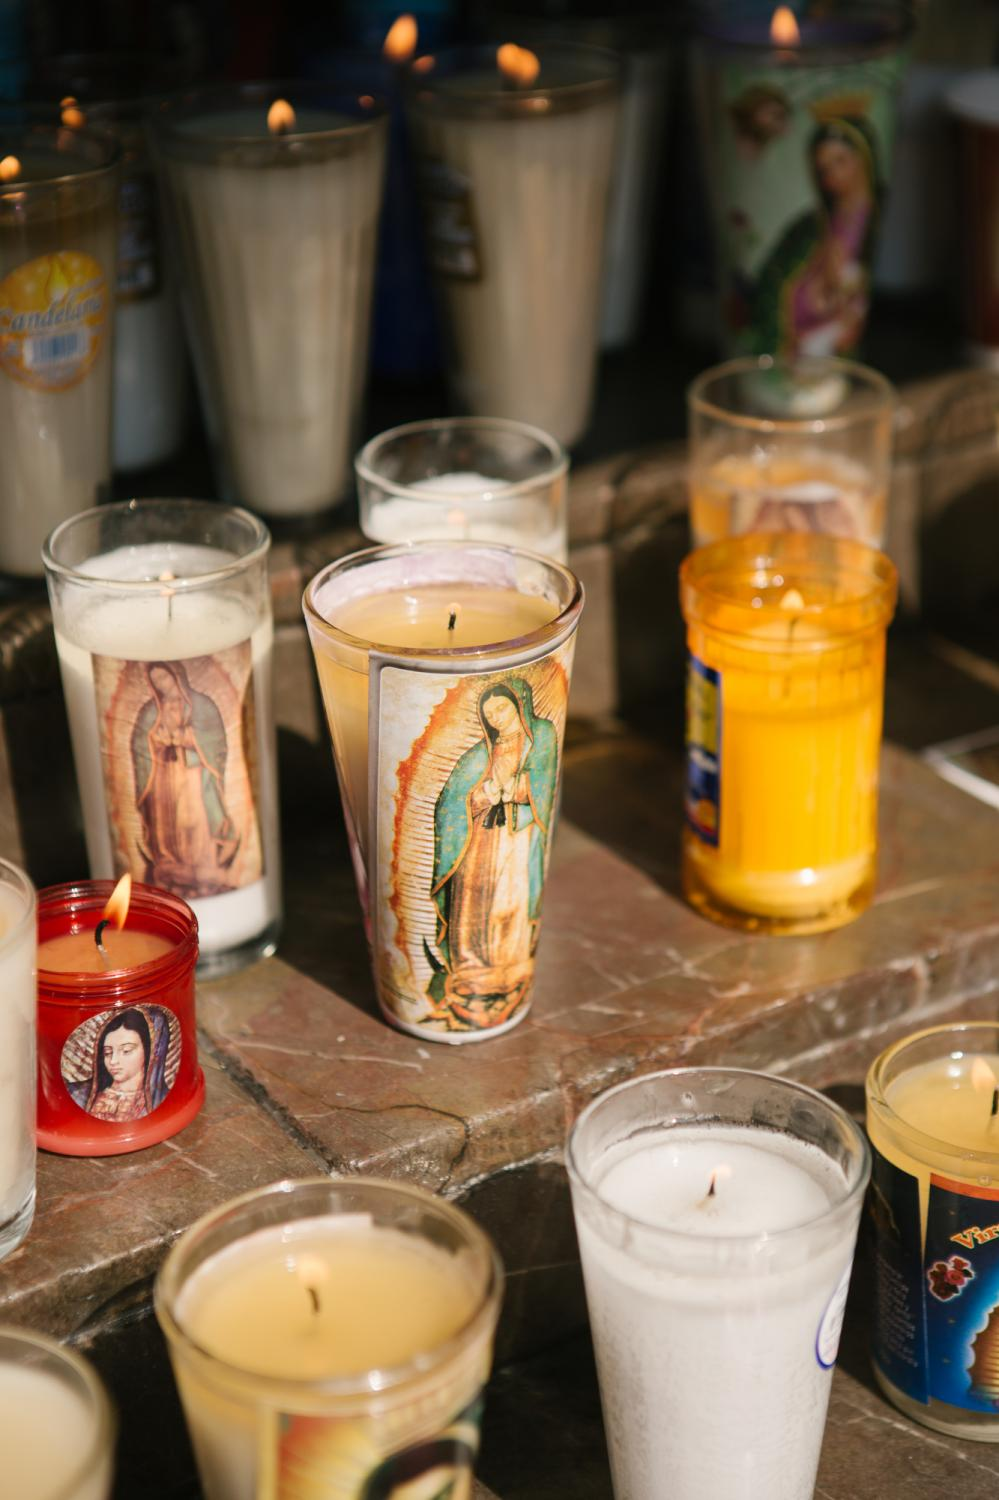 Candles left by visitors sit at the Basilica of Our Lady of Guadalupe in Mexico City, Mexico. Many visitors arrived prior to its closure due to the COVID-19 pandemic.